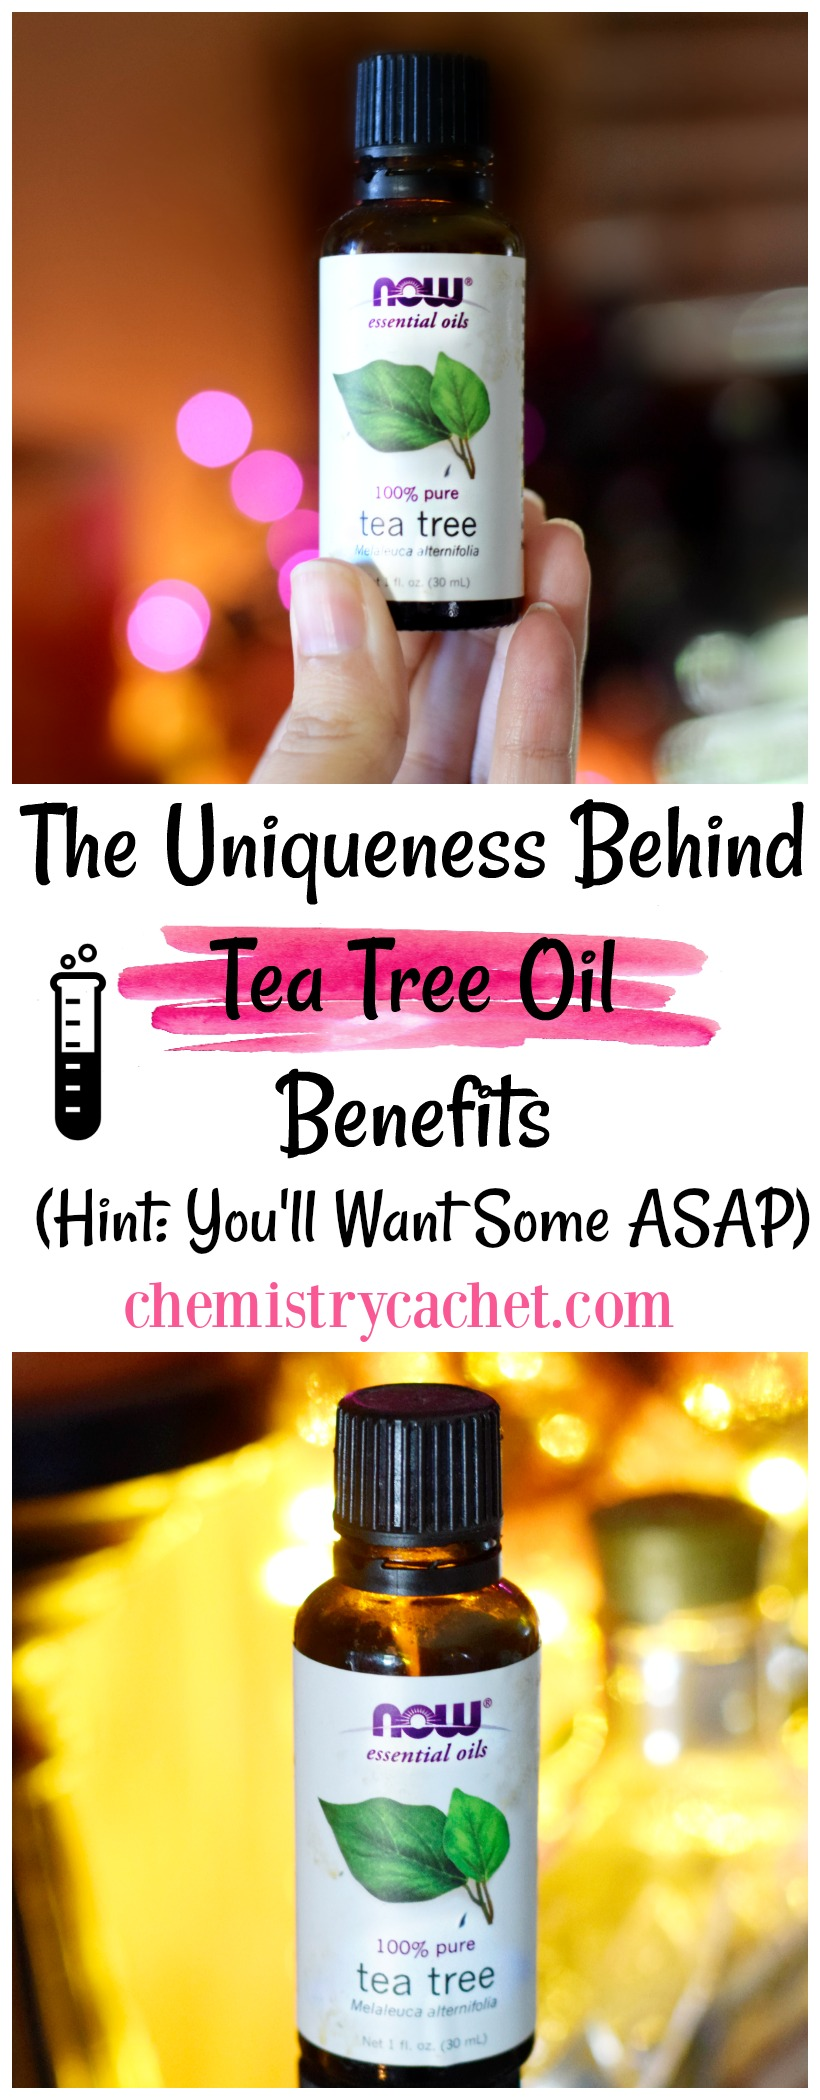 Do you know the truth about tea tree oil Check out The Uniqueness Behind Tea Tree Oil Benefits (Hint You'll Want Some ASAP)! on chemistrycachet.com #teatreeoil #teatreeoilbenefits #chemistry